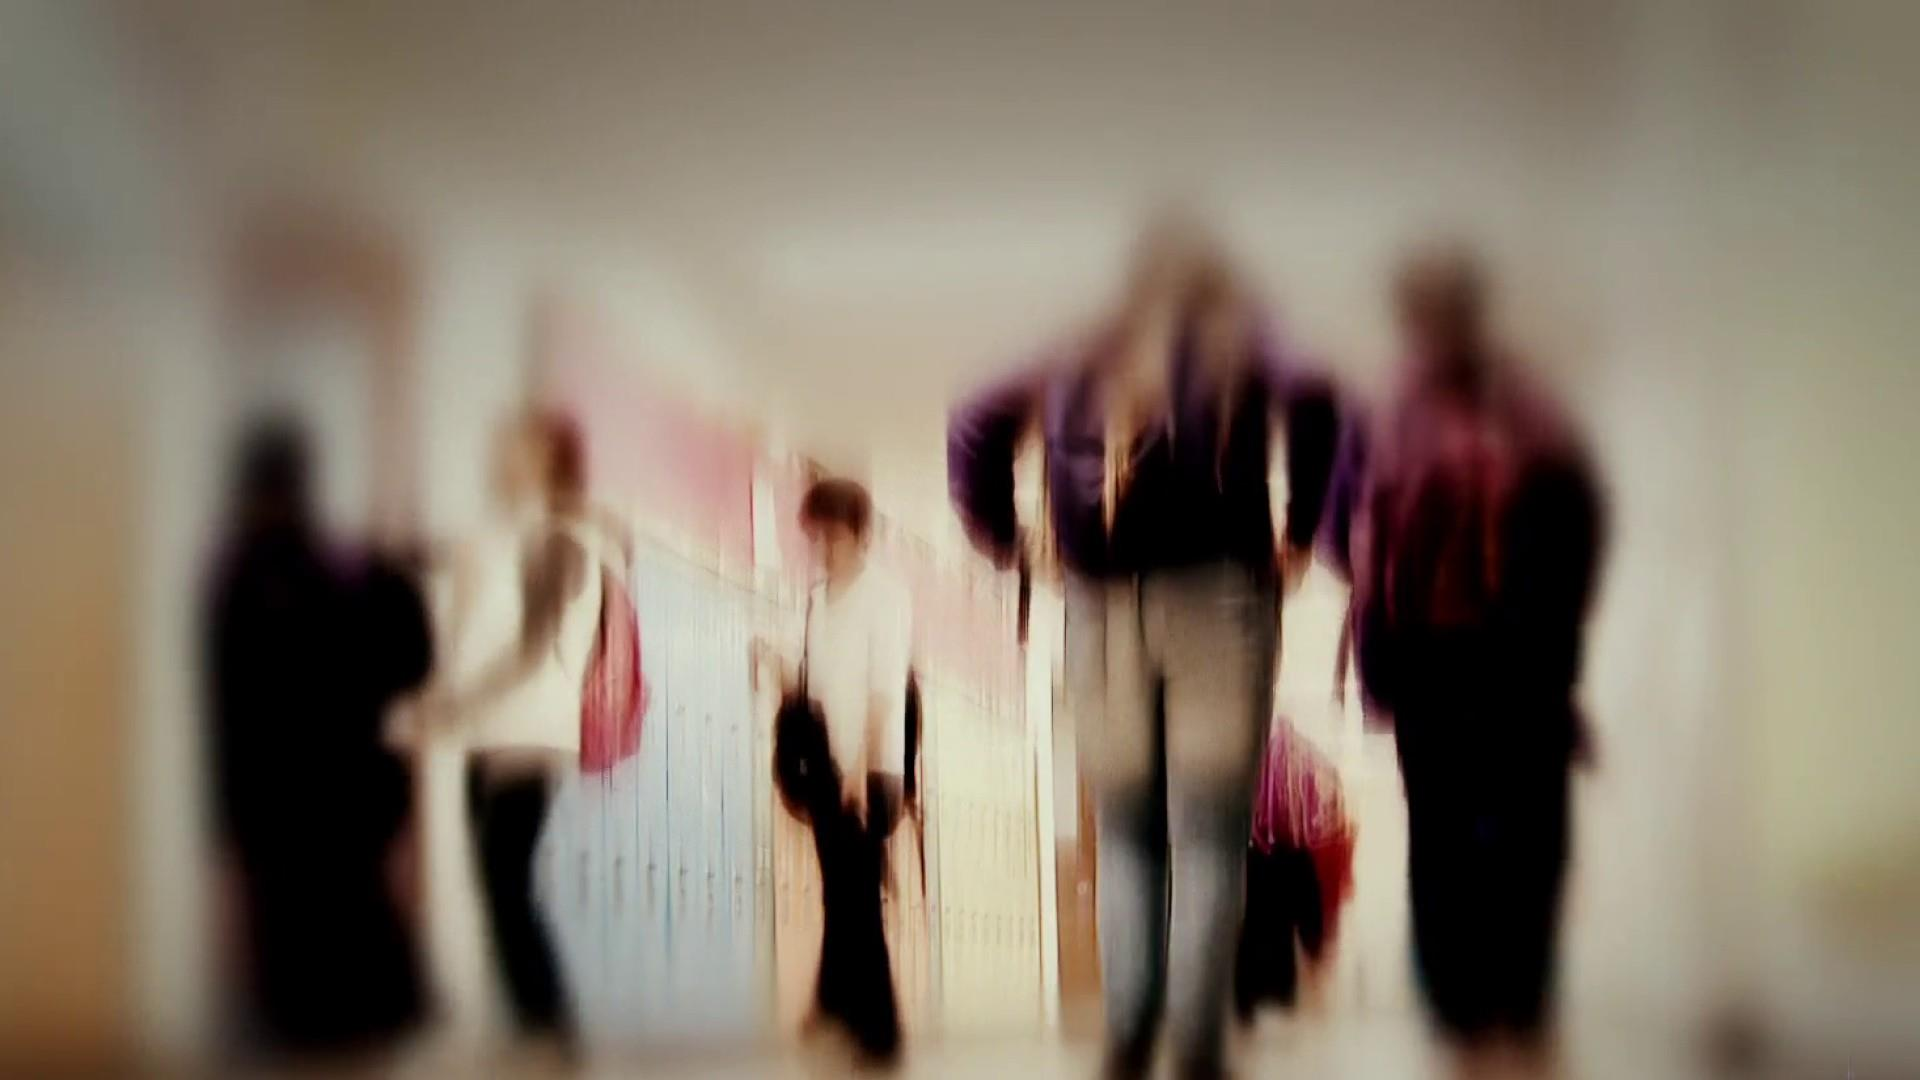 Wisconsin school district to vote on fining parents of bullies